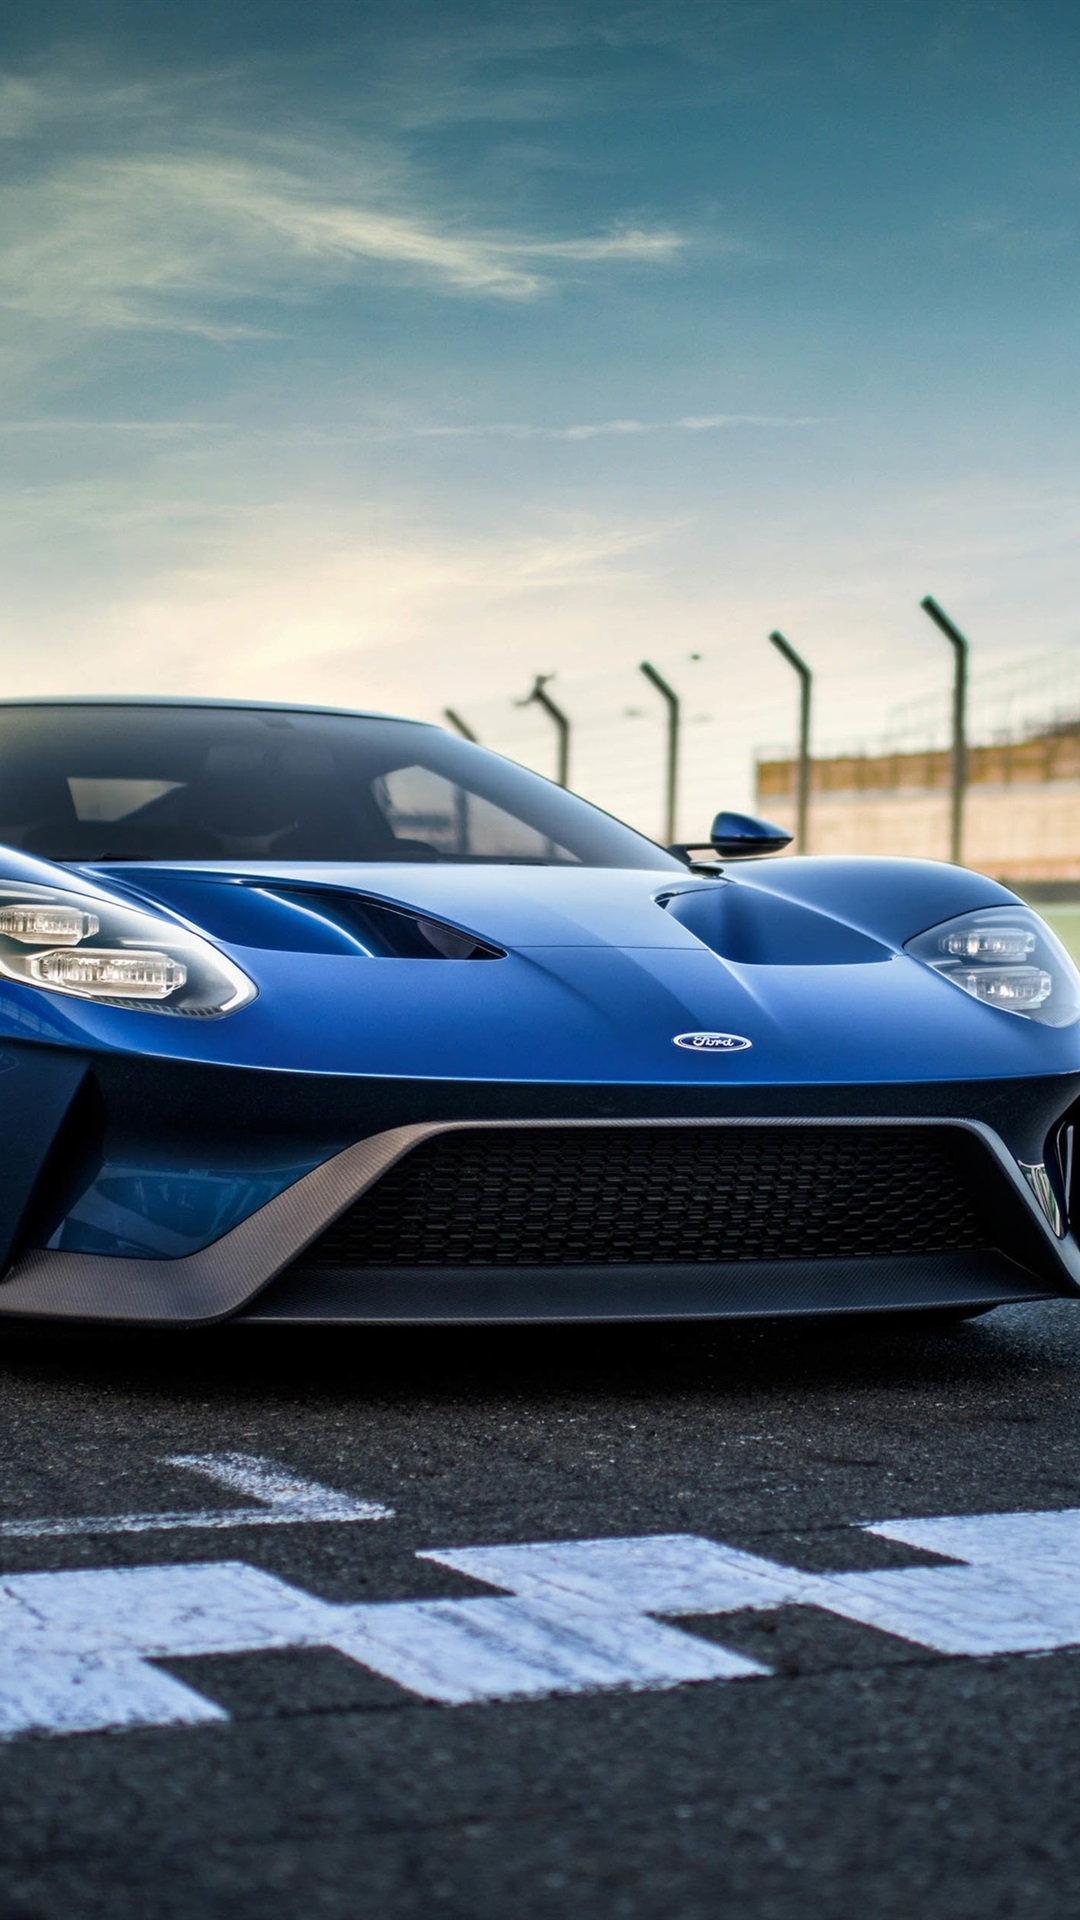 Ford GT II blue supercar front view